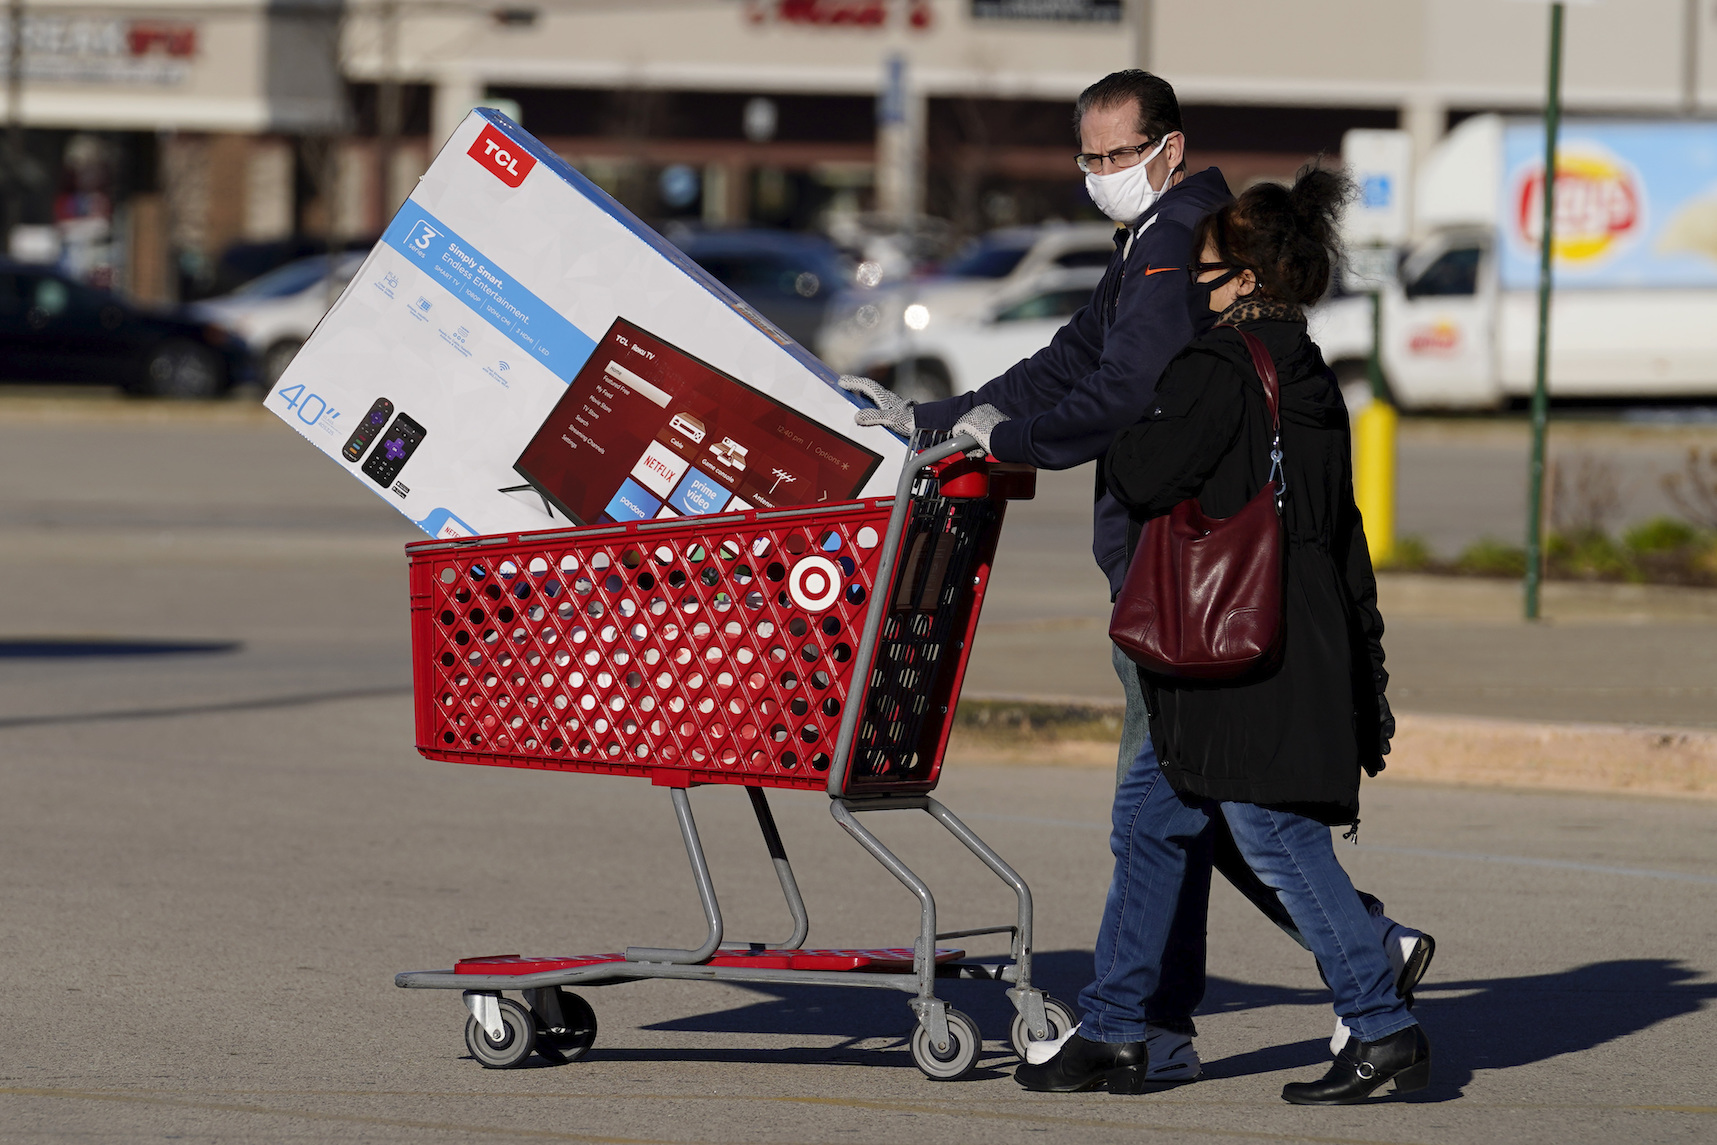 Target's Deal Days will be held from June 20-22, while Walmart's similarly named Deals for Days will go for four days, from June 20-23.